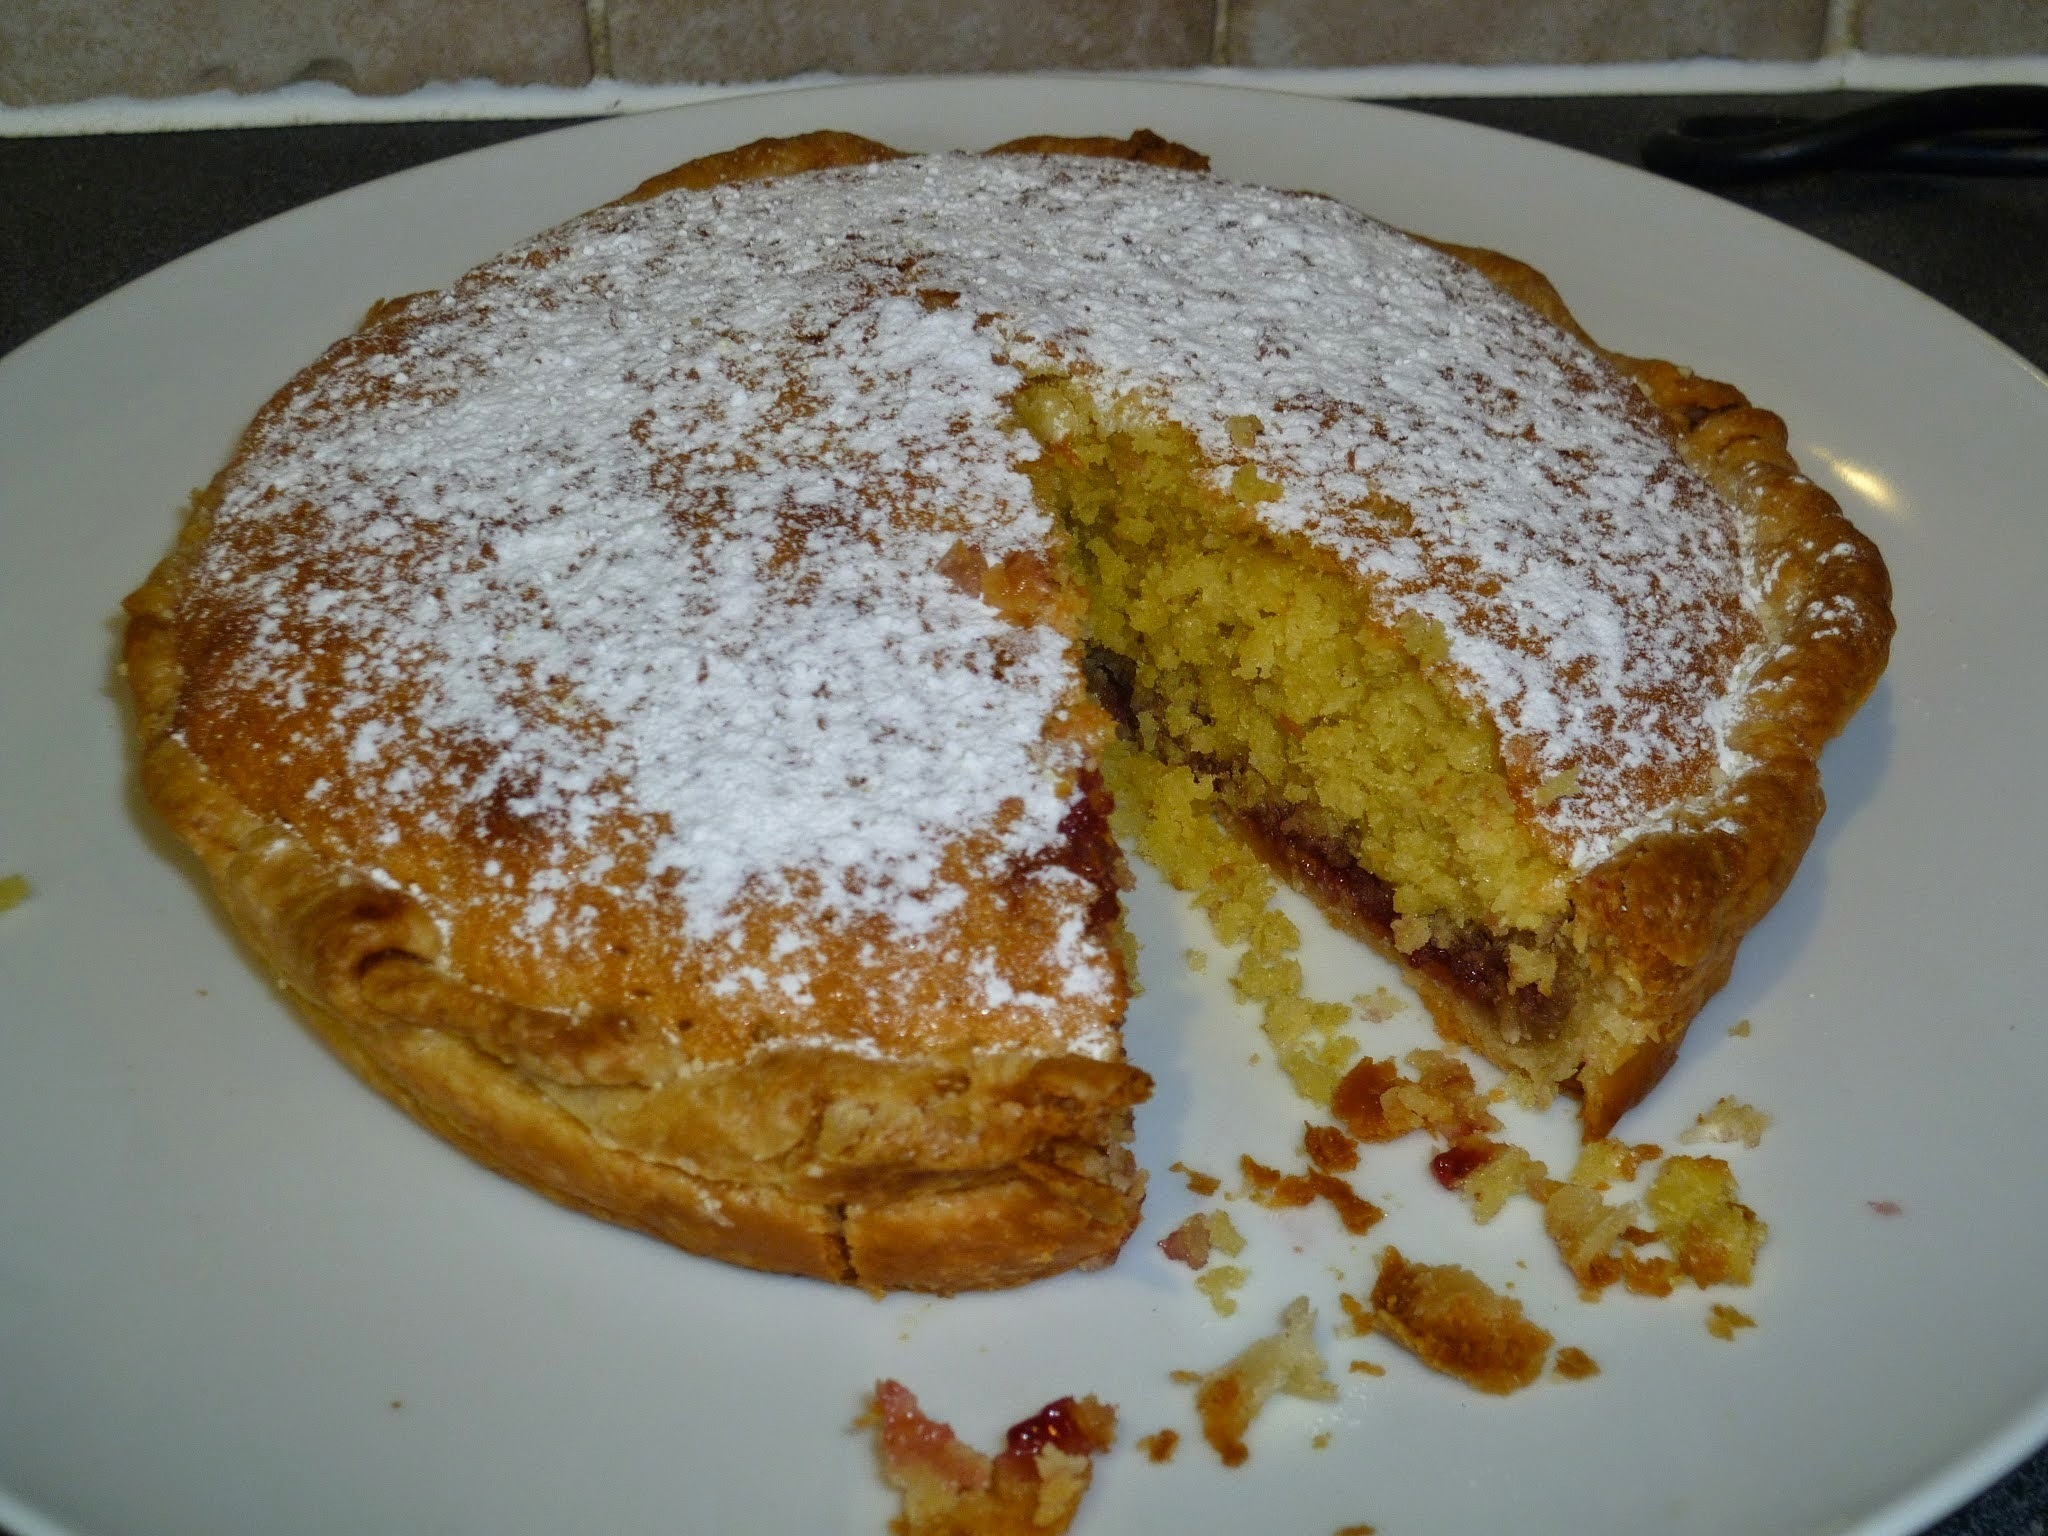 Coconut and raspberry jam pastry